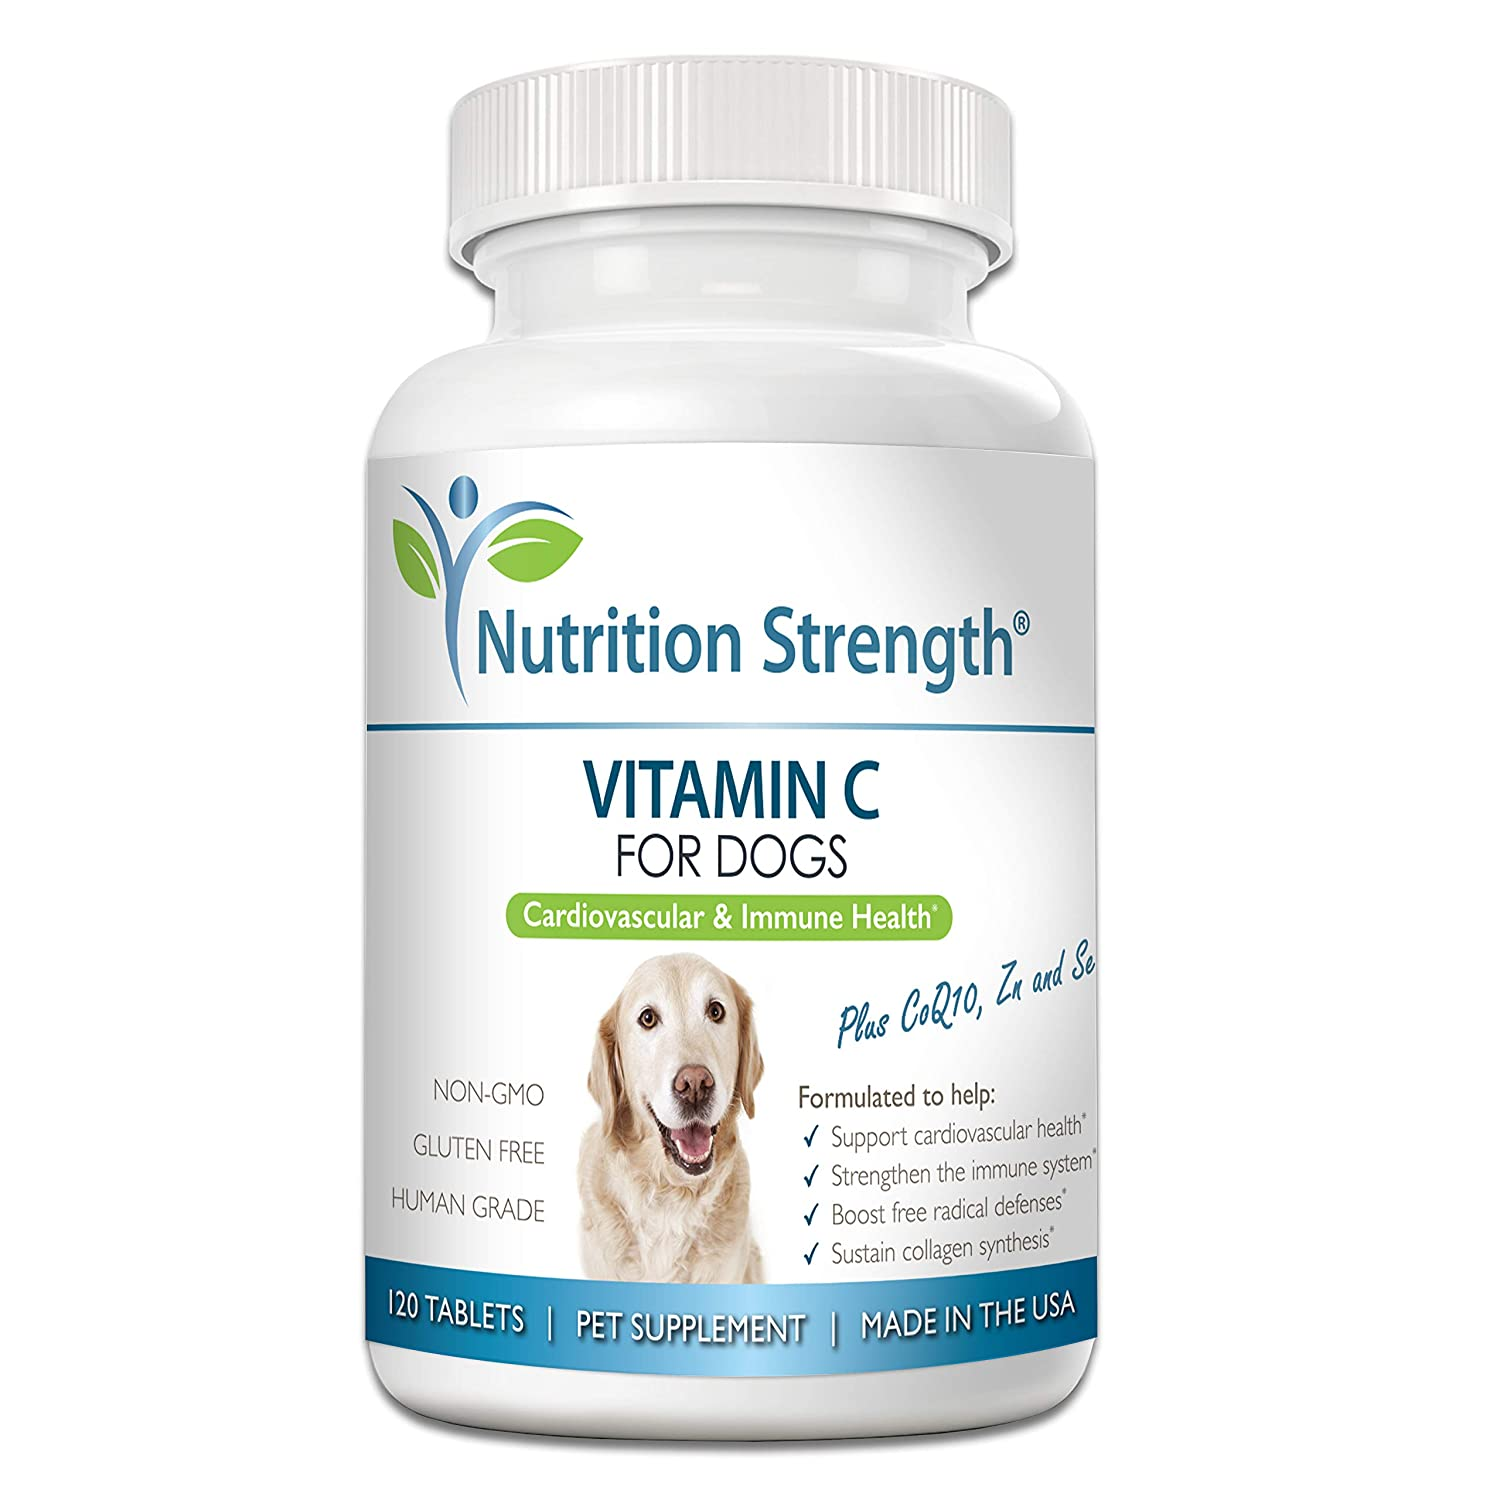 Nutrition Strength Vitamin C for Dogs to Support Cardiovascular Health, Help Strengthen The Immune System, Boost Free Radical Defenses and Sustain Collagen Synthesis, 120 Chewable Tablets